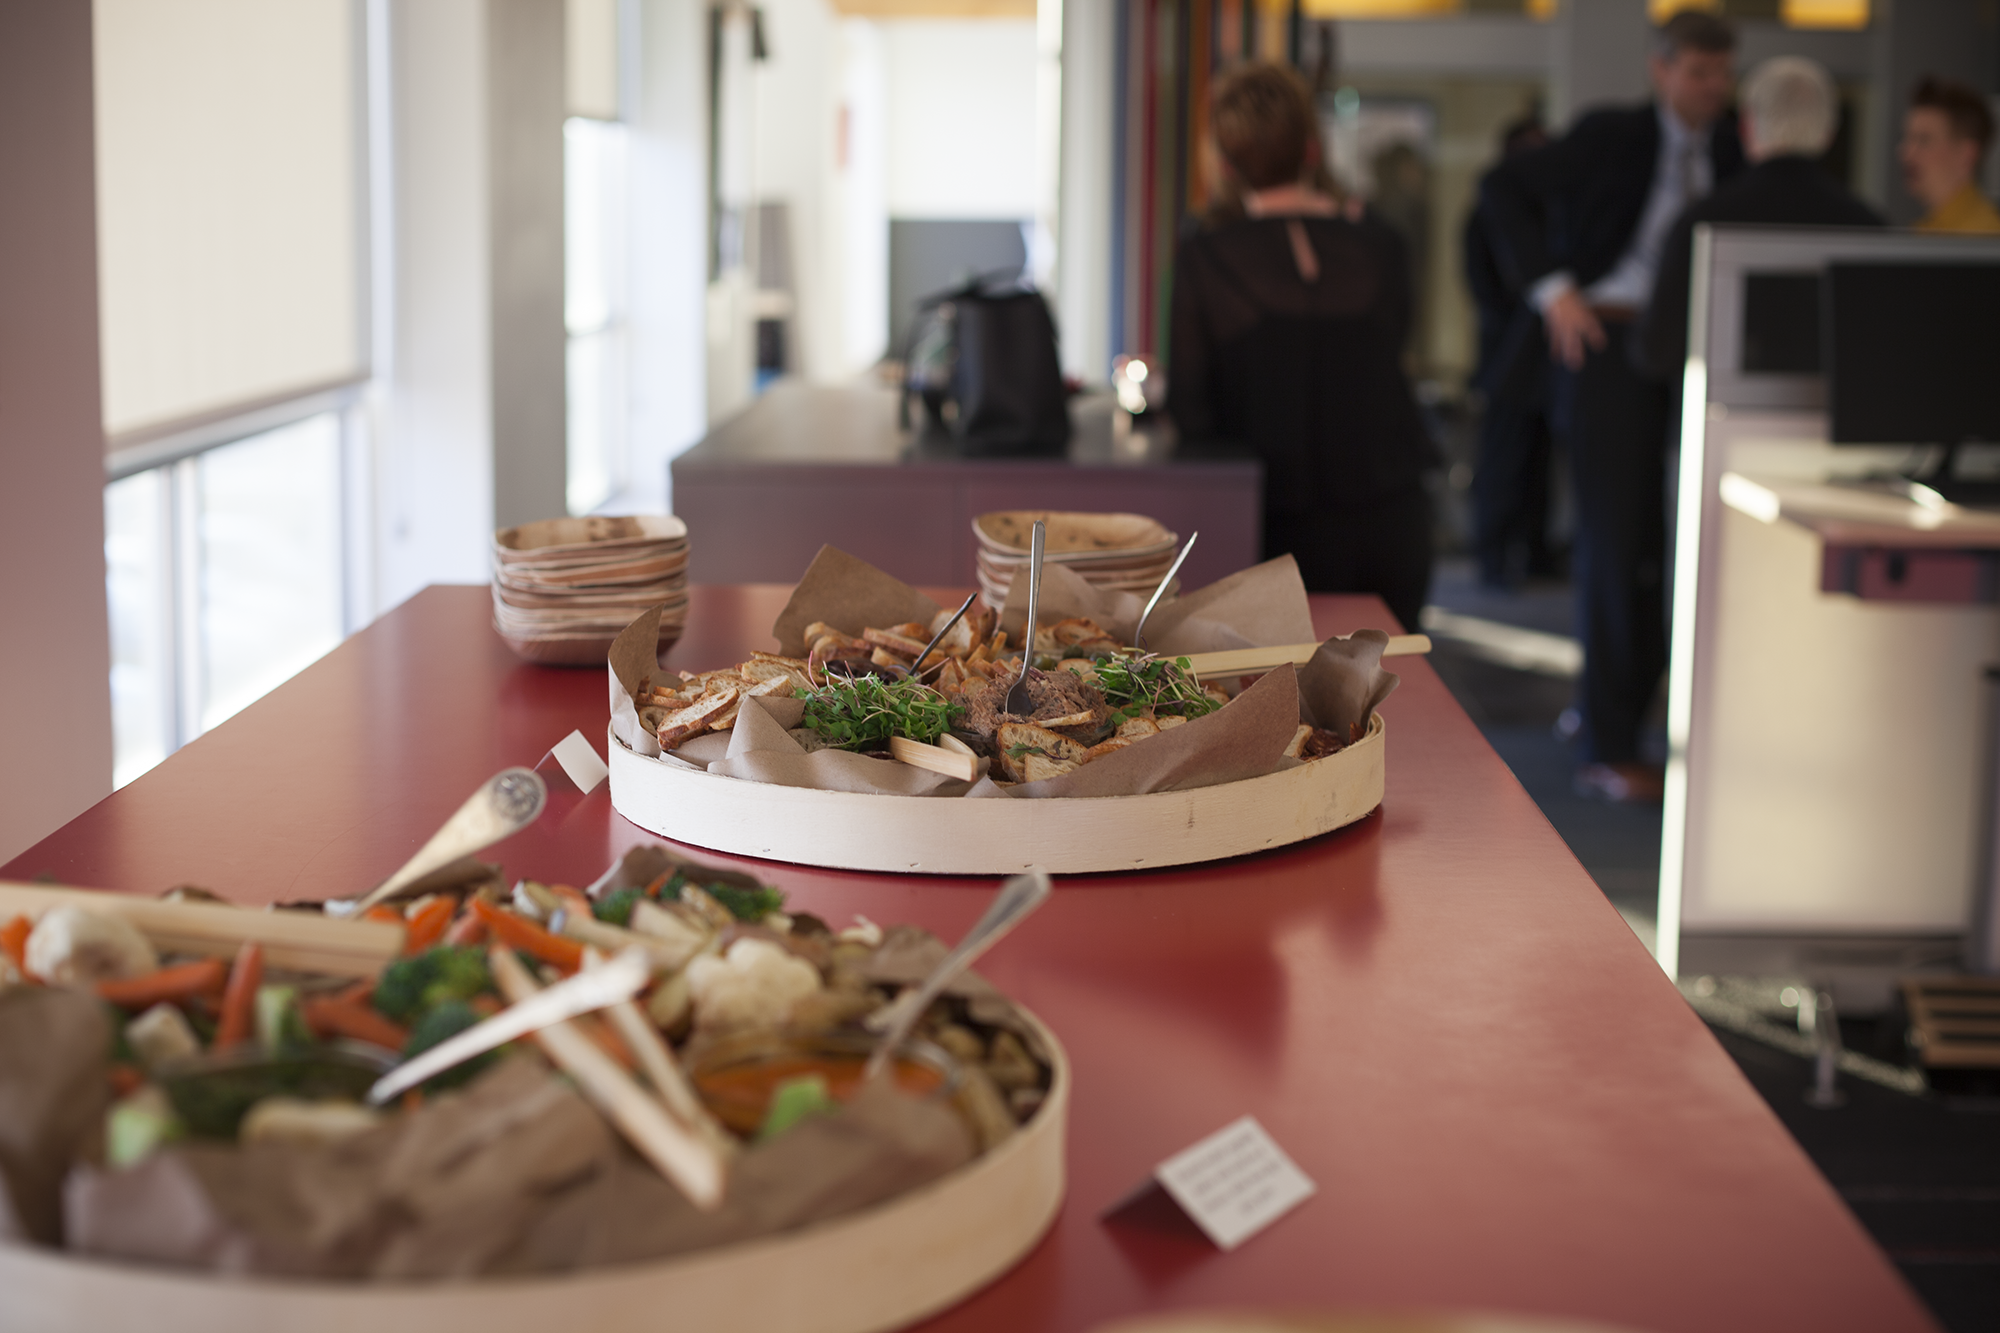 Self-Service Platters - Prices below serve 50 guests; Compostable serviceware available; Delivery available